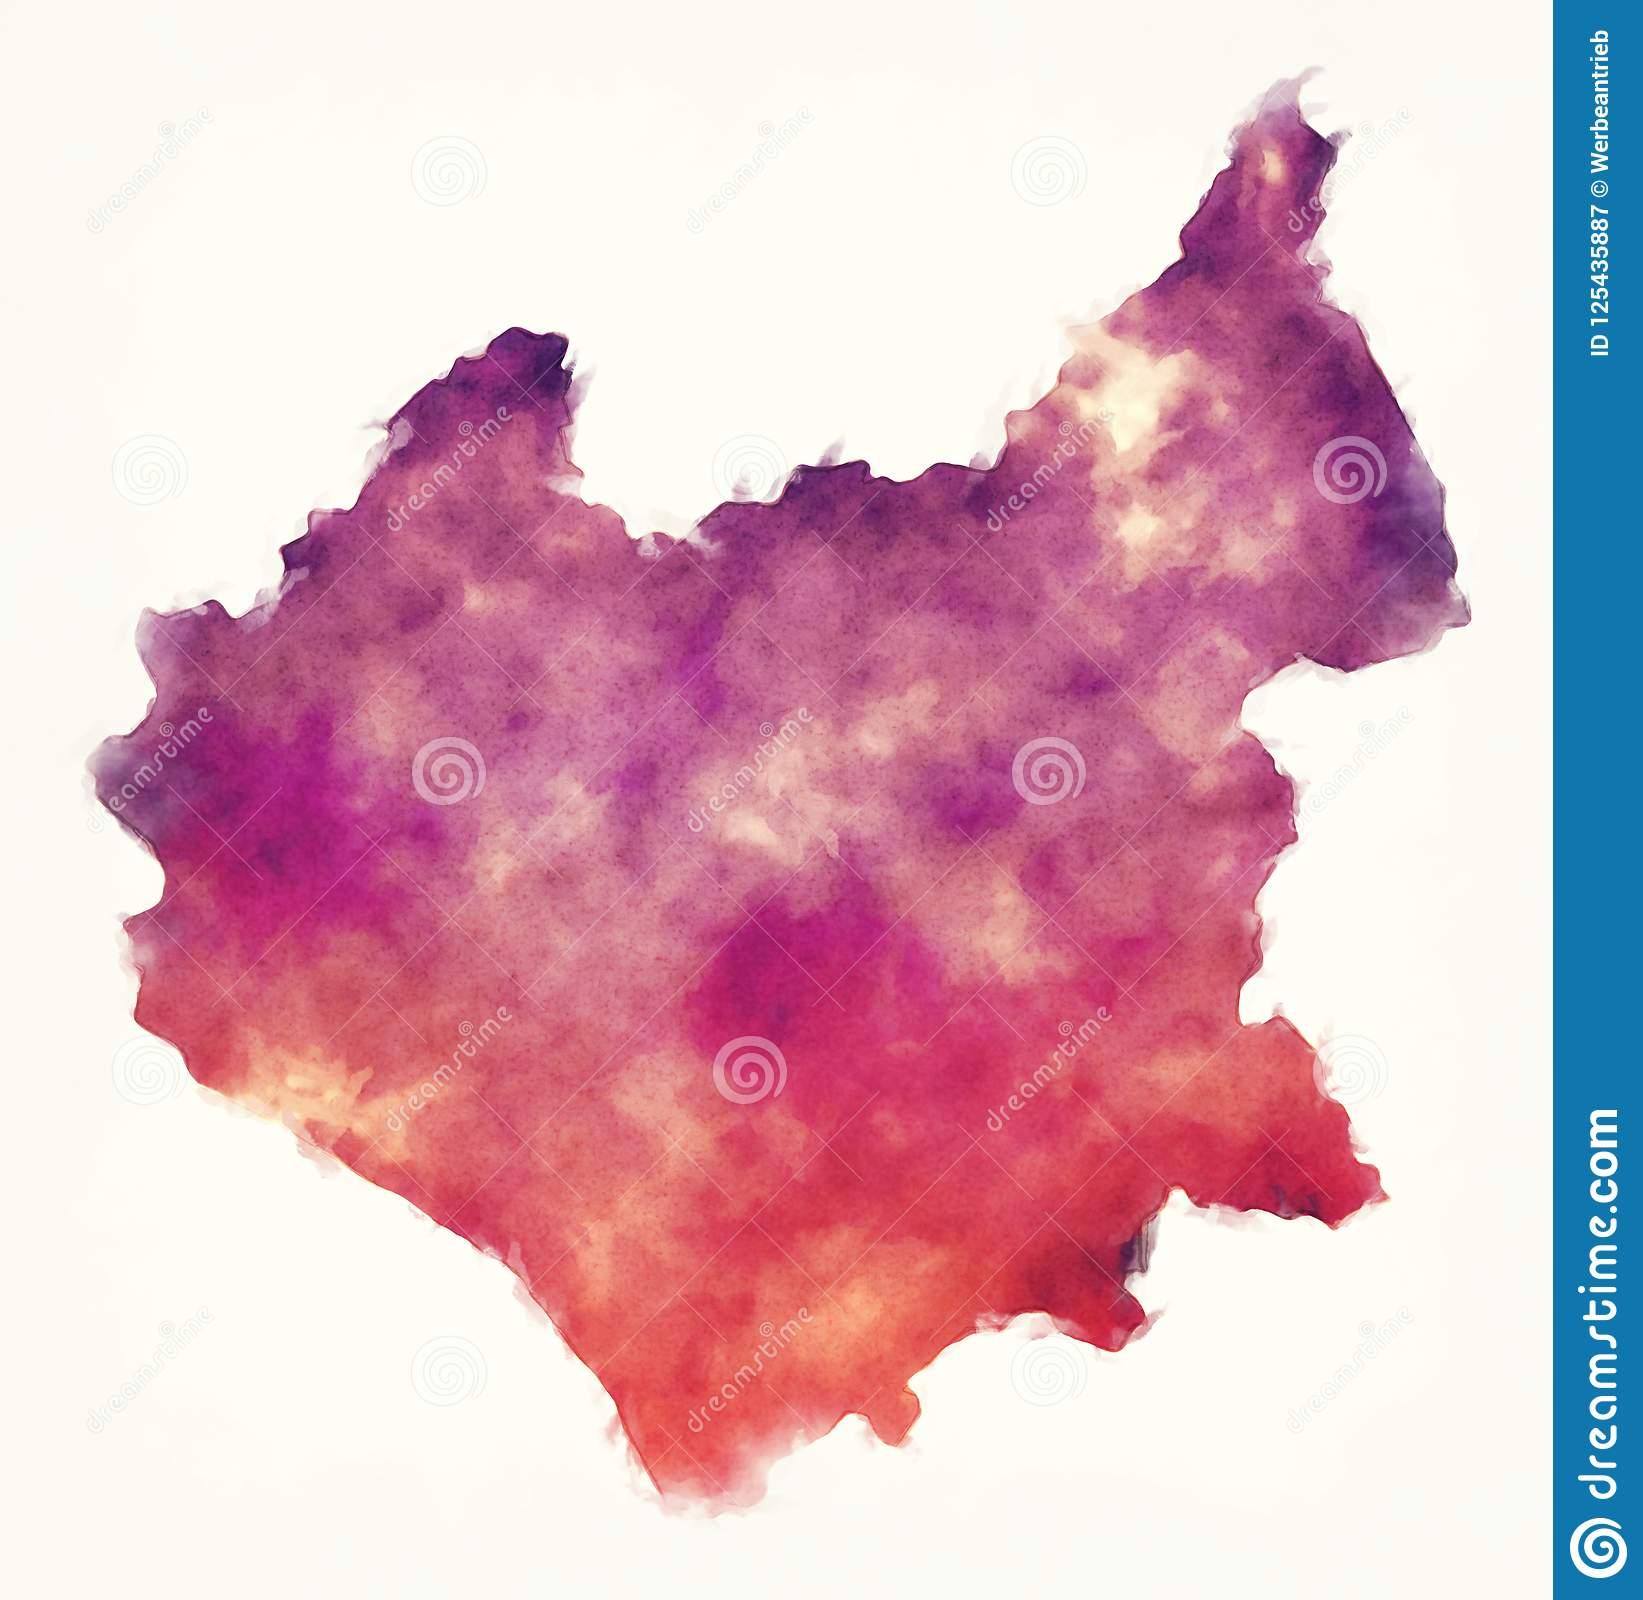 Leicestershire Uk Map.Leicestershire County Map England Uk Watercolor In Front Of A White